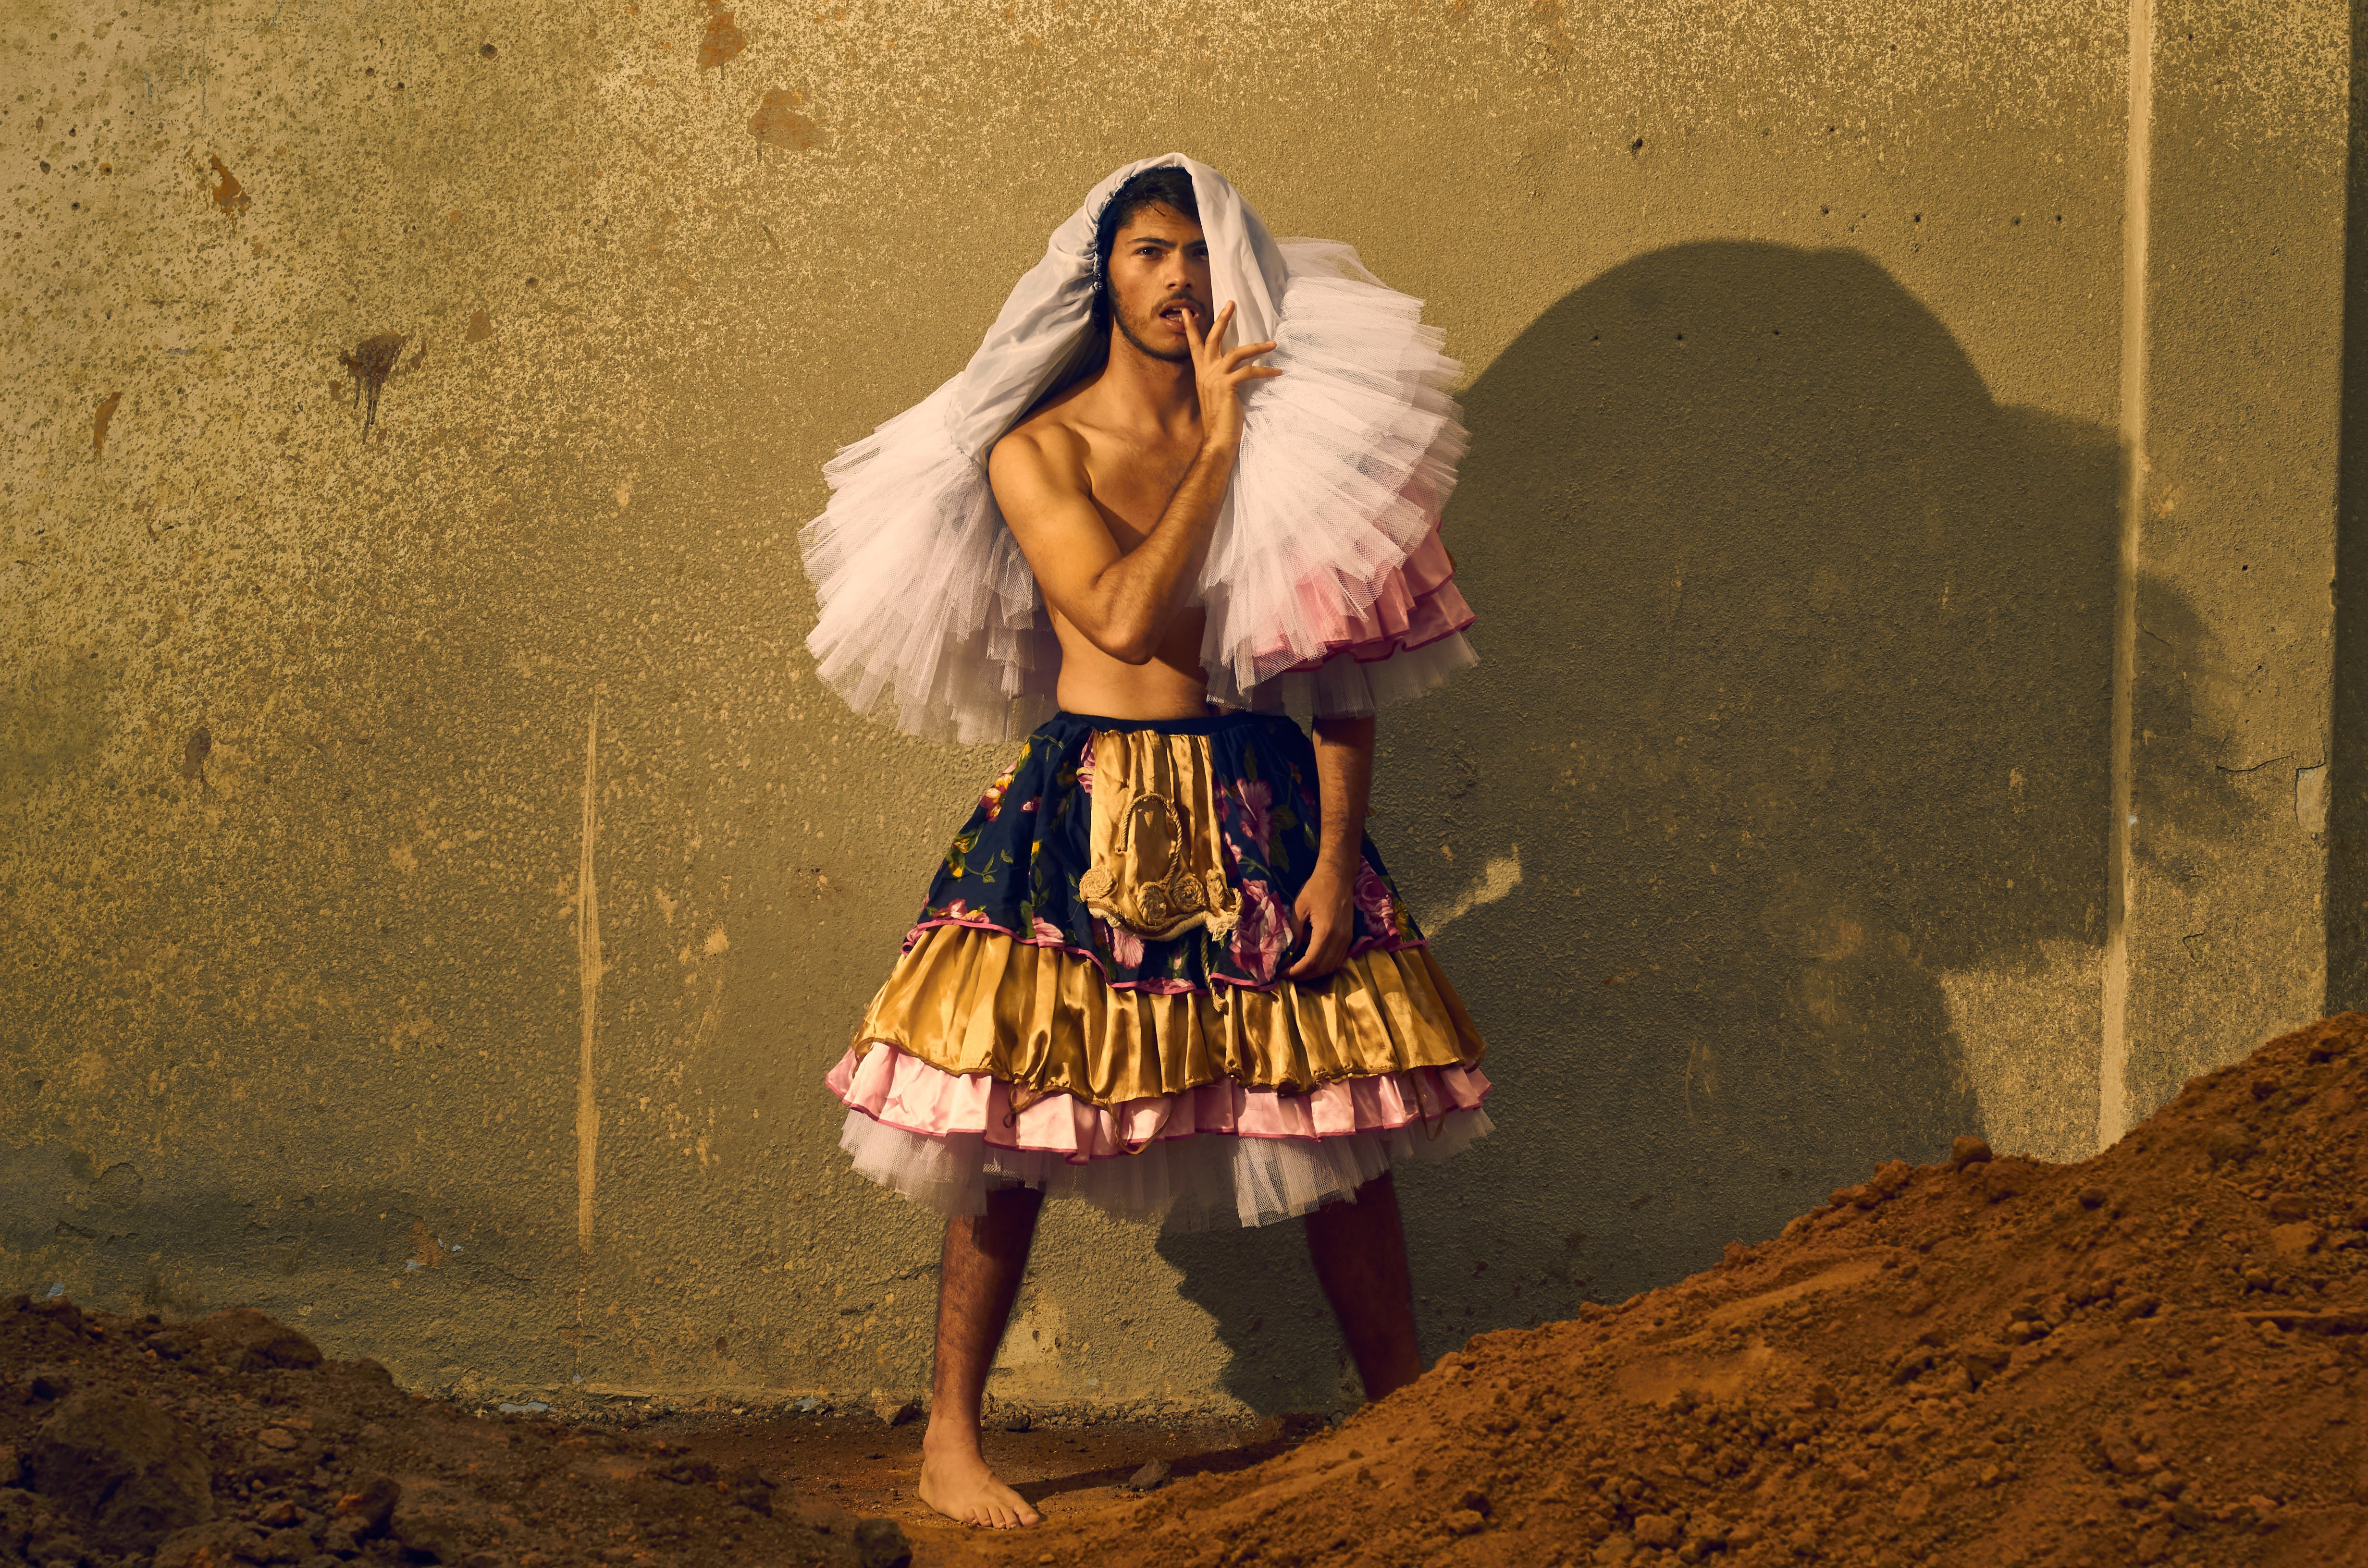 Man Wearing Gold and Pink Skirt